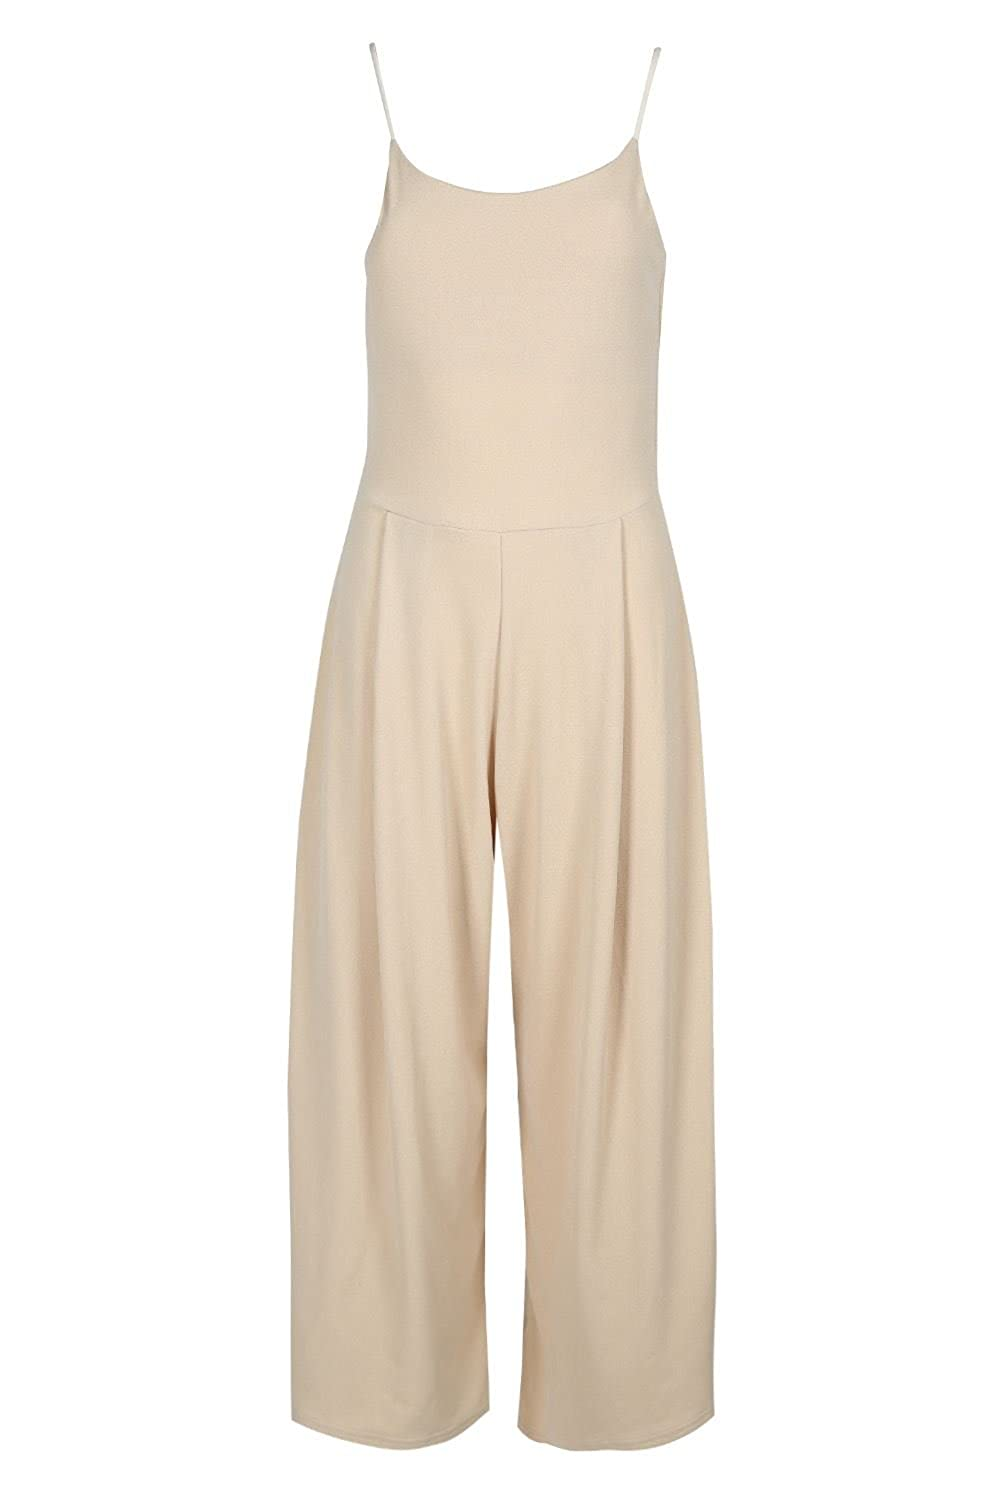 Wholesale Be jealous Women's Playsuit Ladies Strappy Palazzo Wide Leg Pant Trouser All in One Jumpsuit Plus Size UK 8-22 for sale